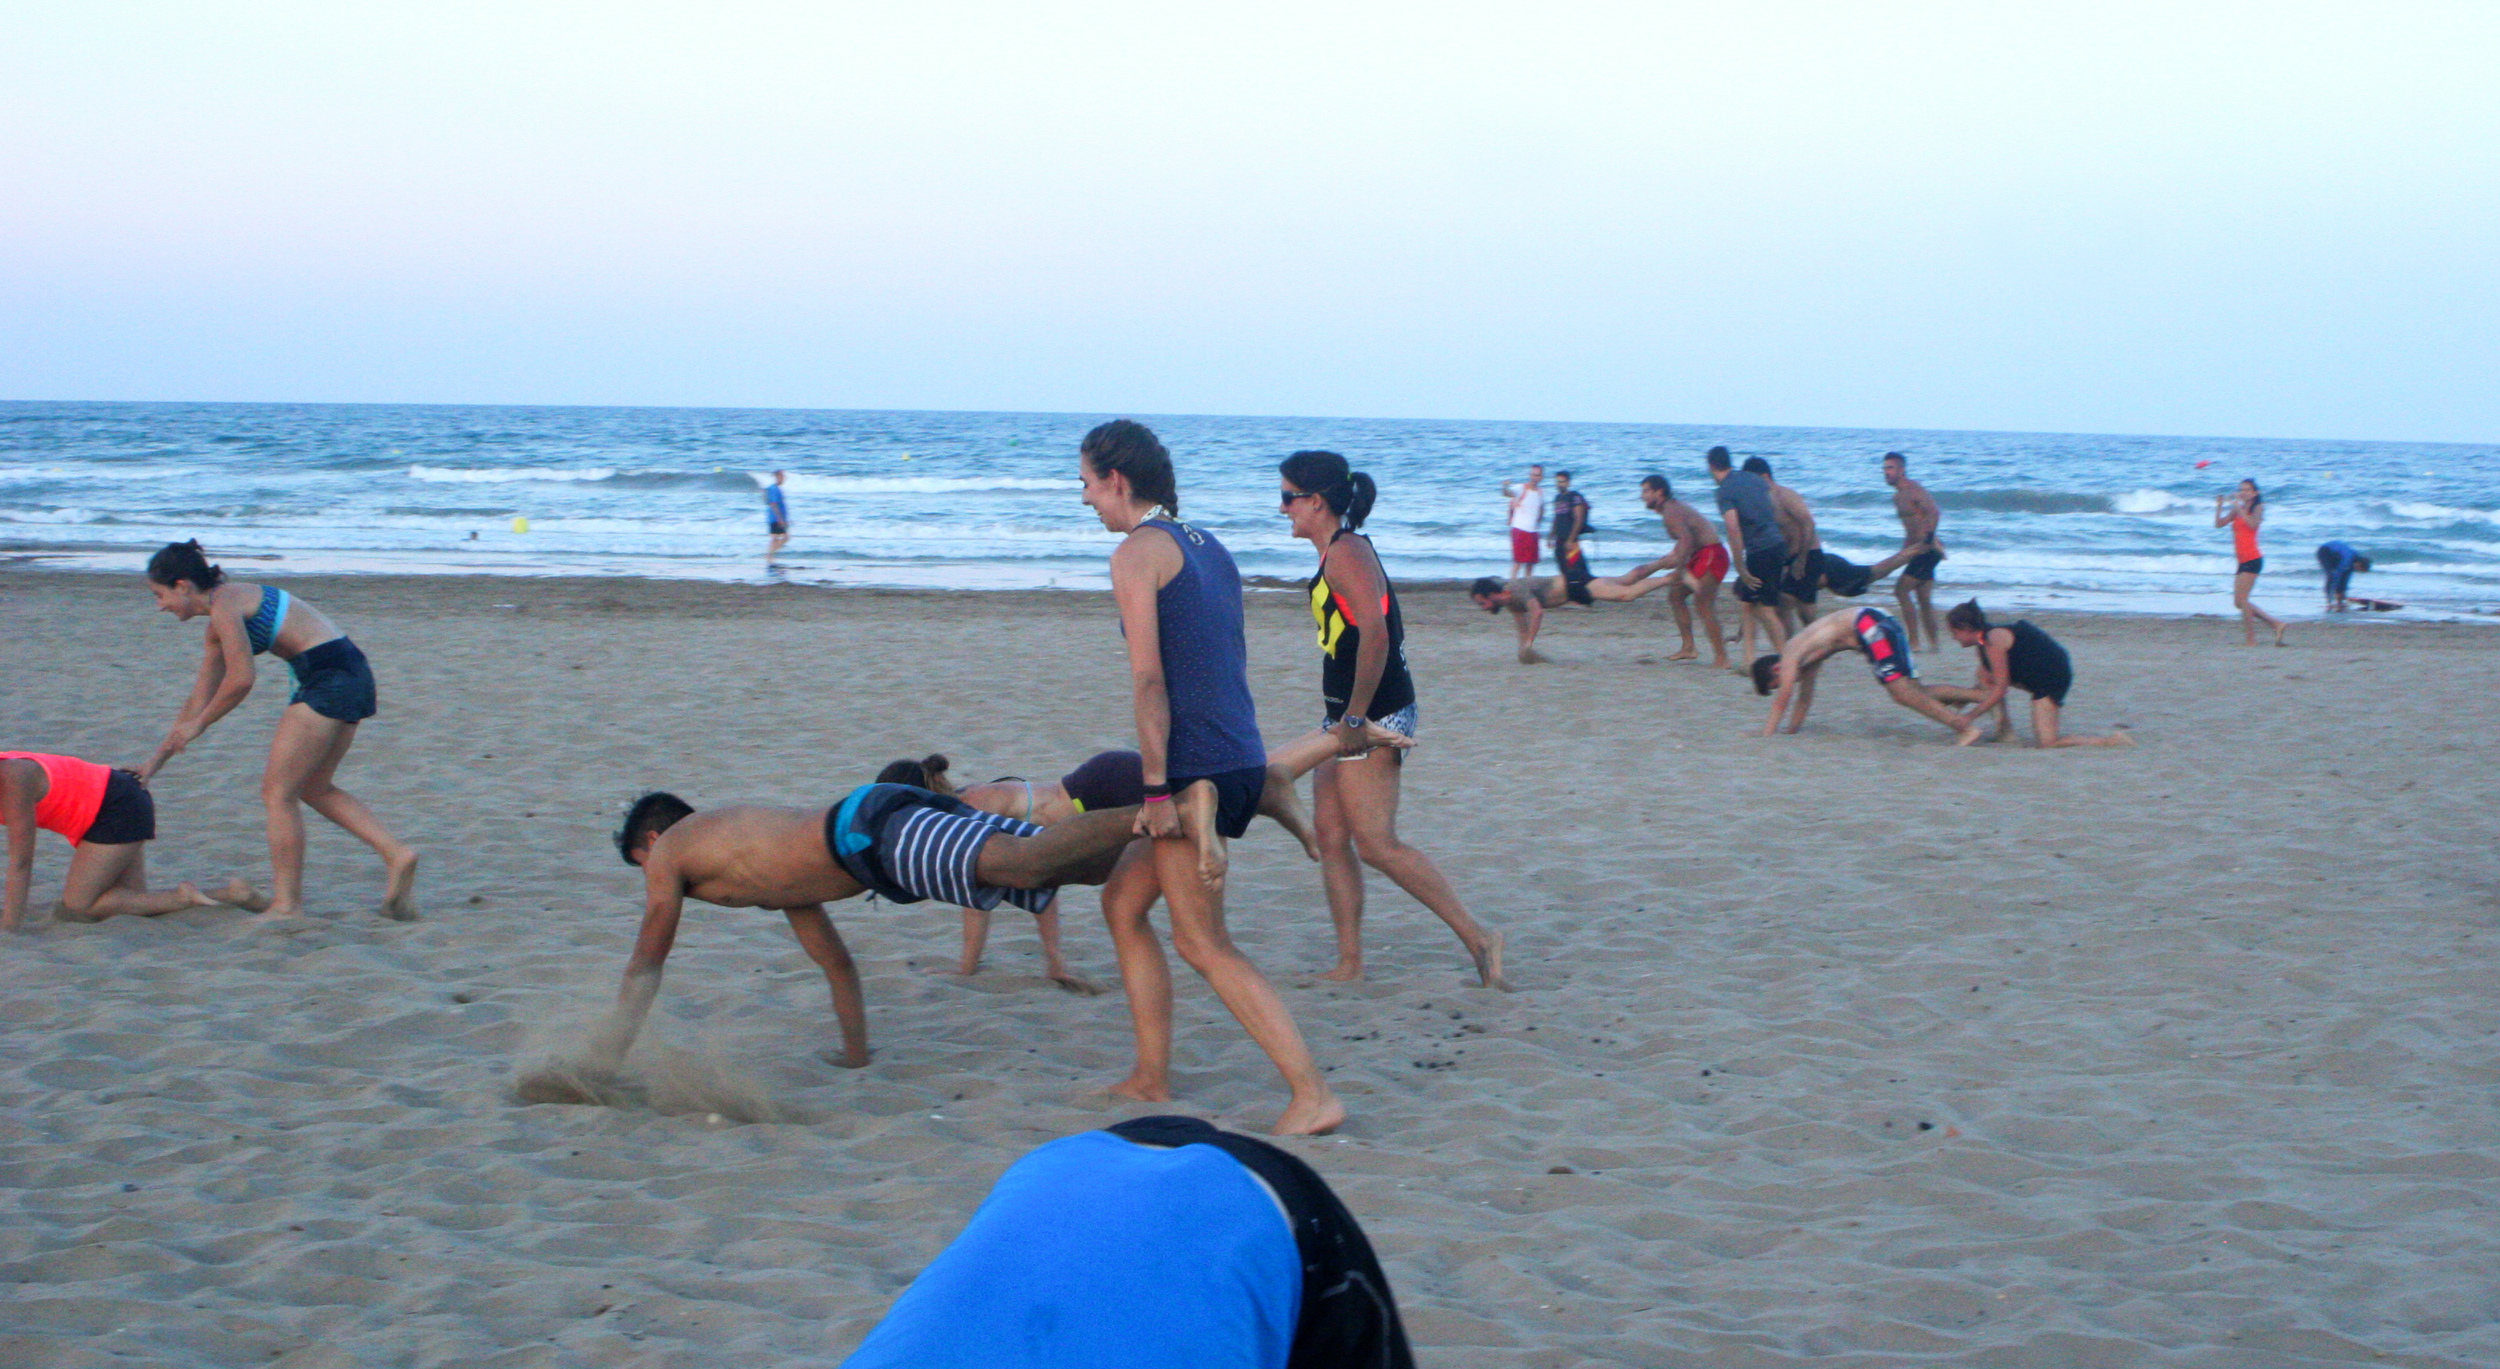 Full_CrossFit_Beach_Wod_V2_2015-1.jpg